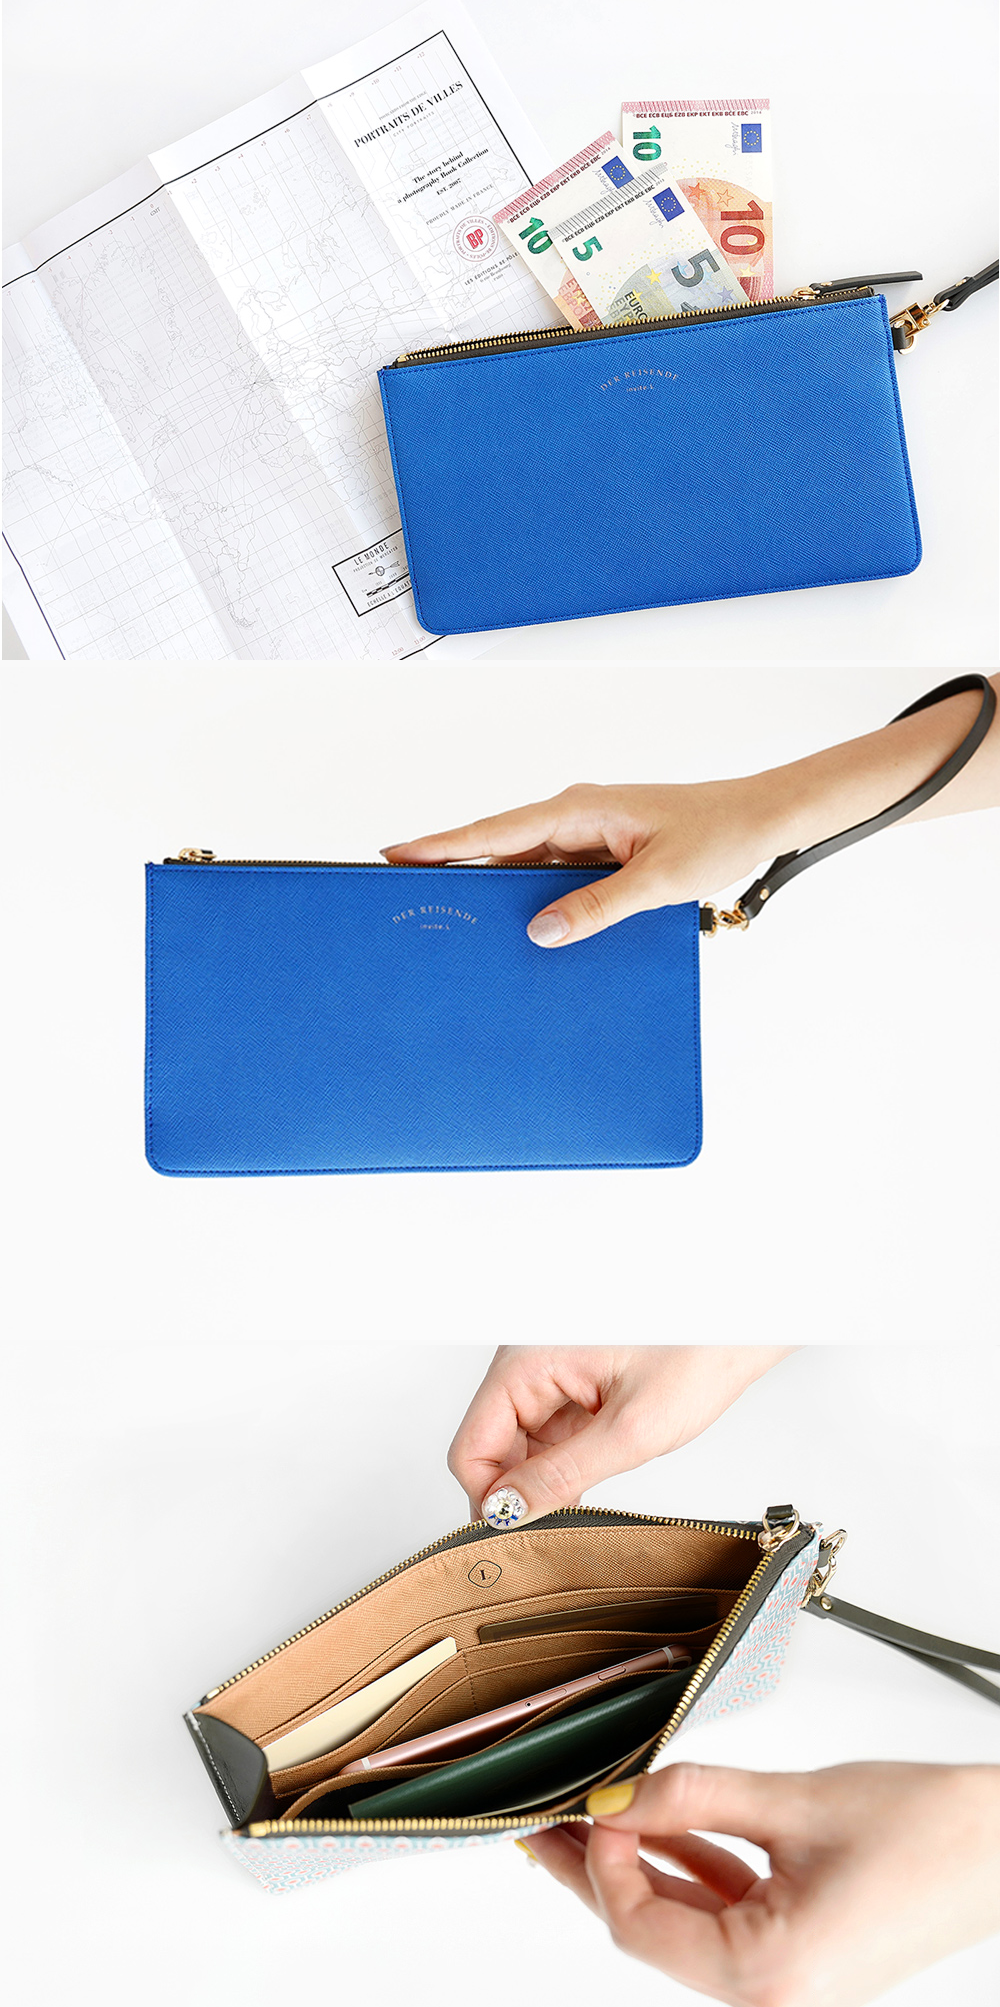 The perfect little clutch for travel and nights out? This Leather Slim Clutch! This slim and compact clutch is full of pockets and card slots for all your necessities. The colorful geometric patterns, sturdy design, and handy wrist strap make this a must have accessory. Check it out and see all the gorgeous details on our site!